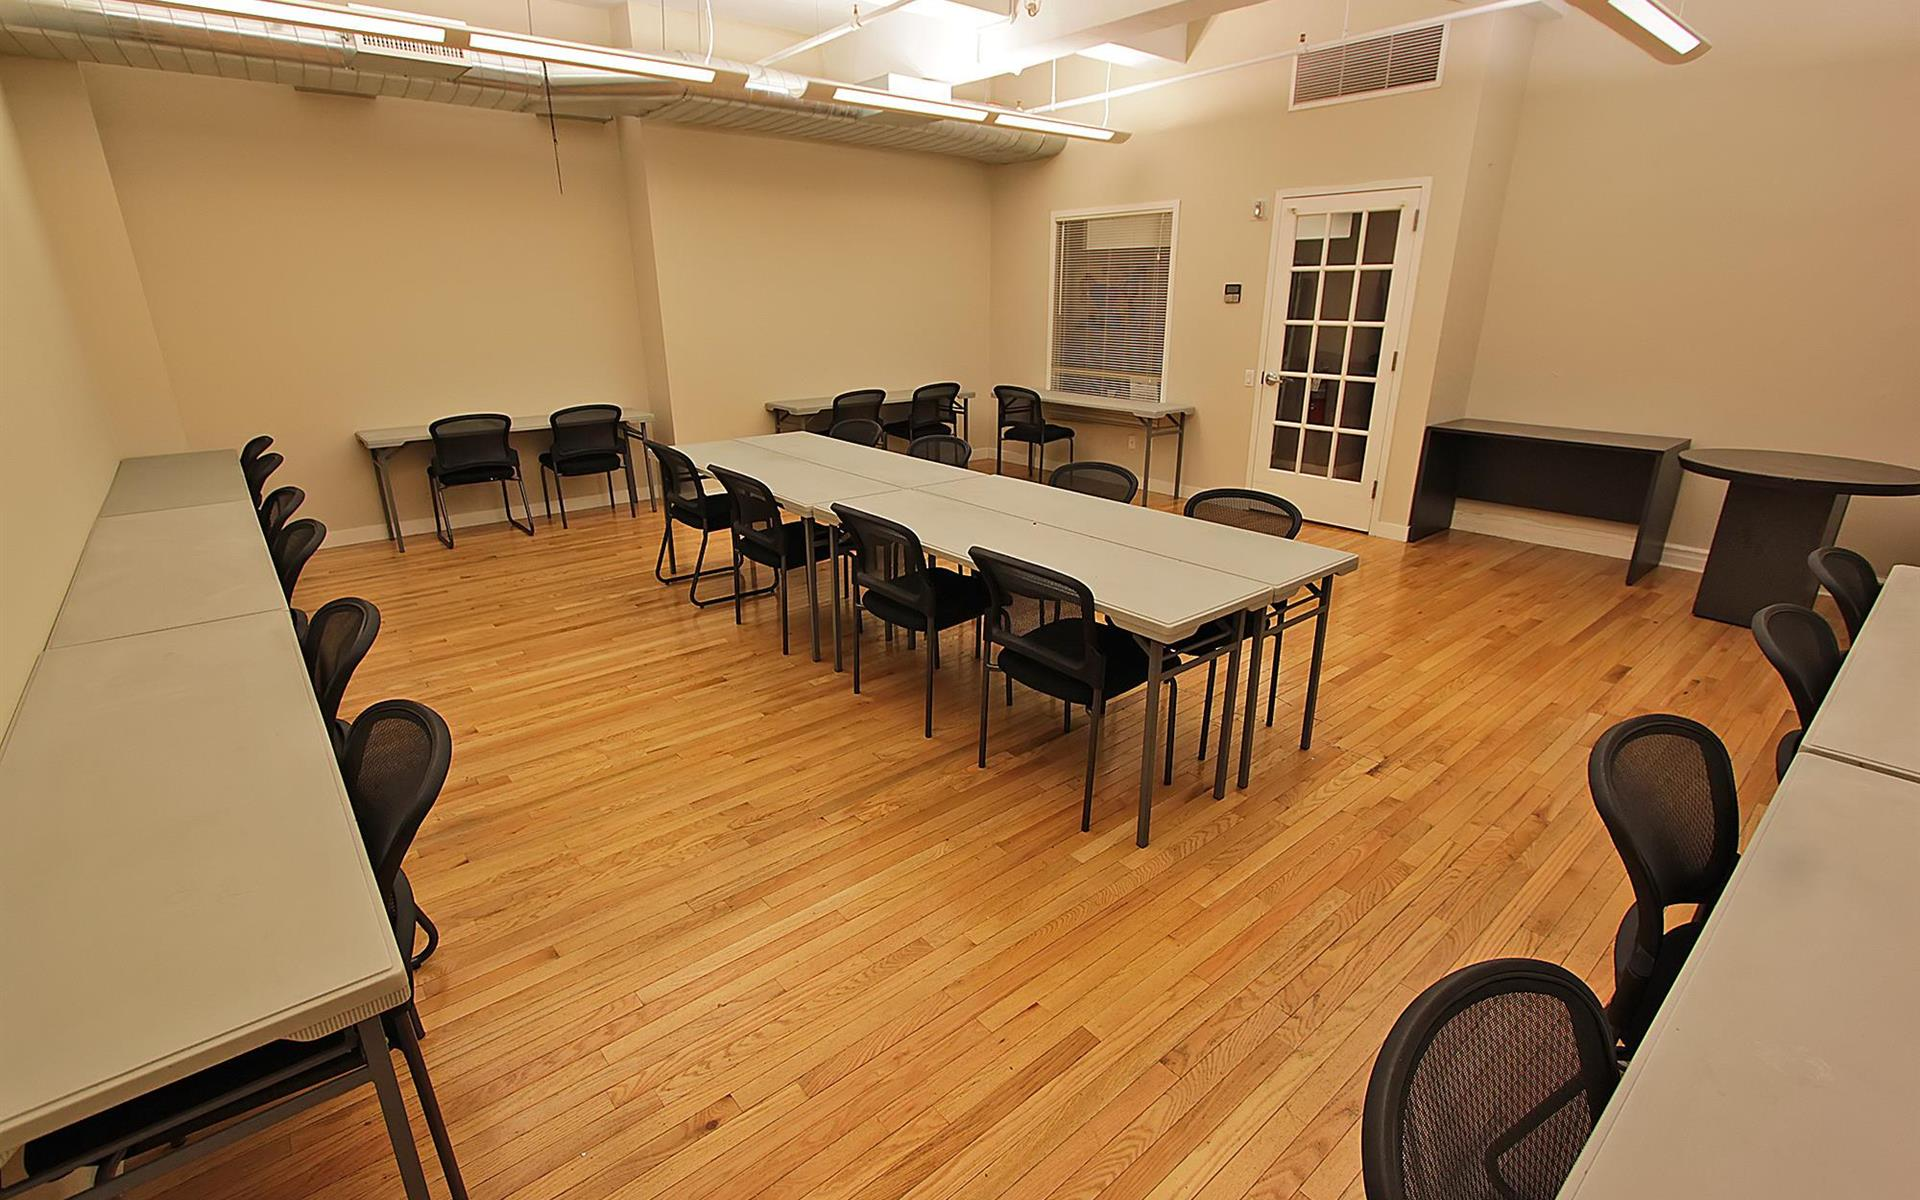 Select Office Suites - 1115 Broadway Flatiron NYC - 15 person team room